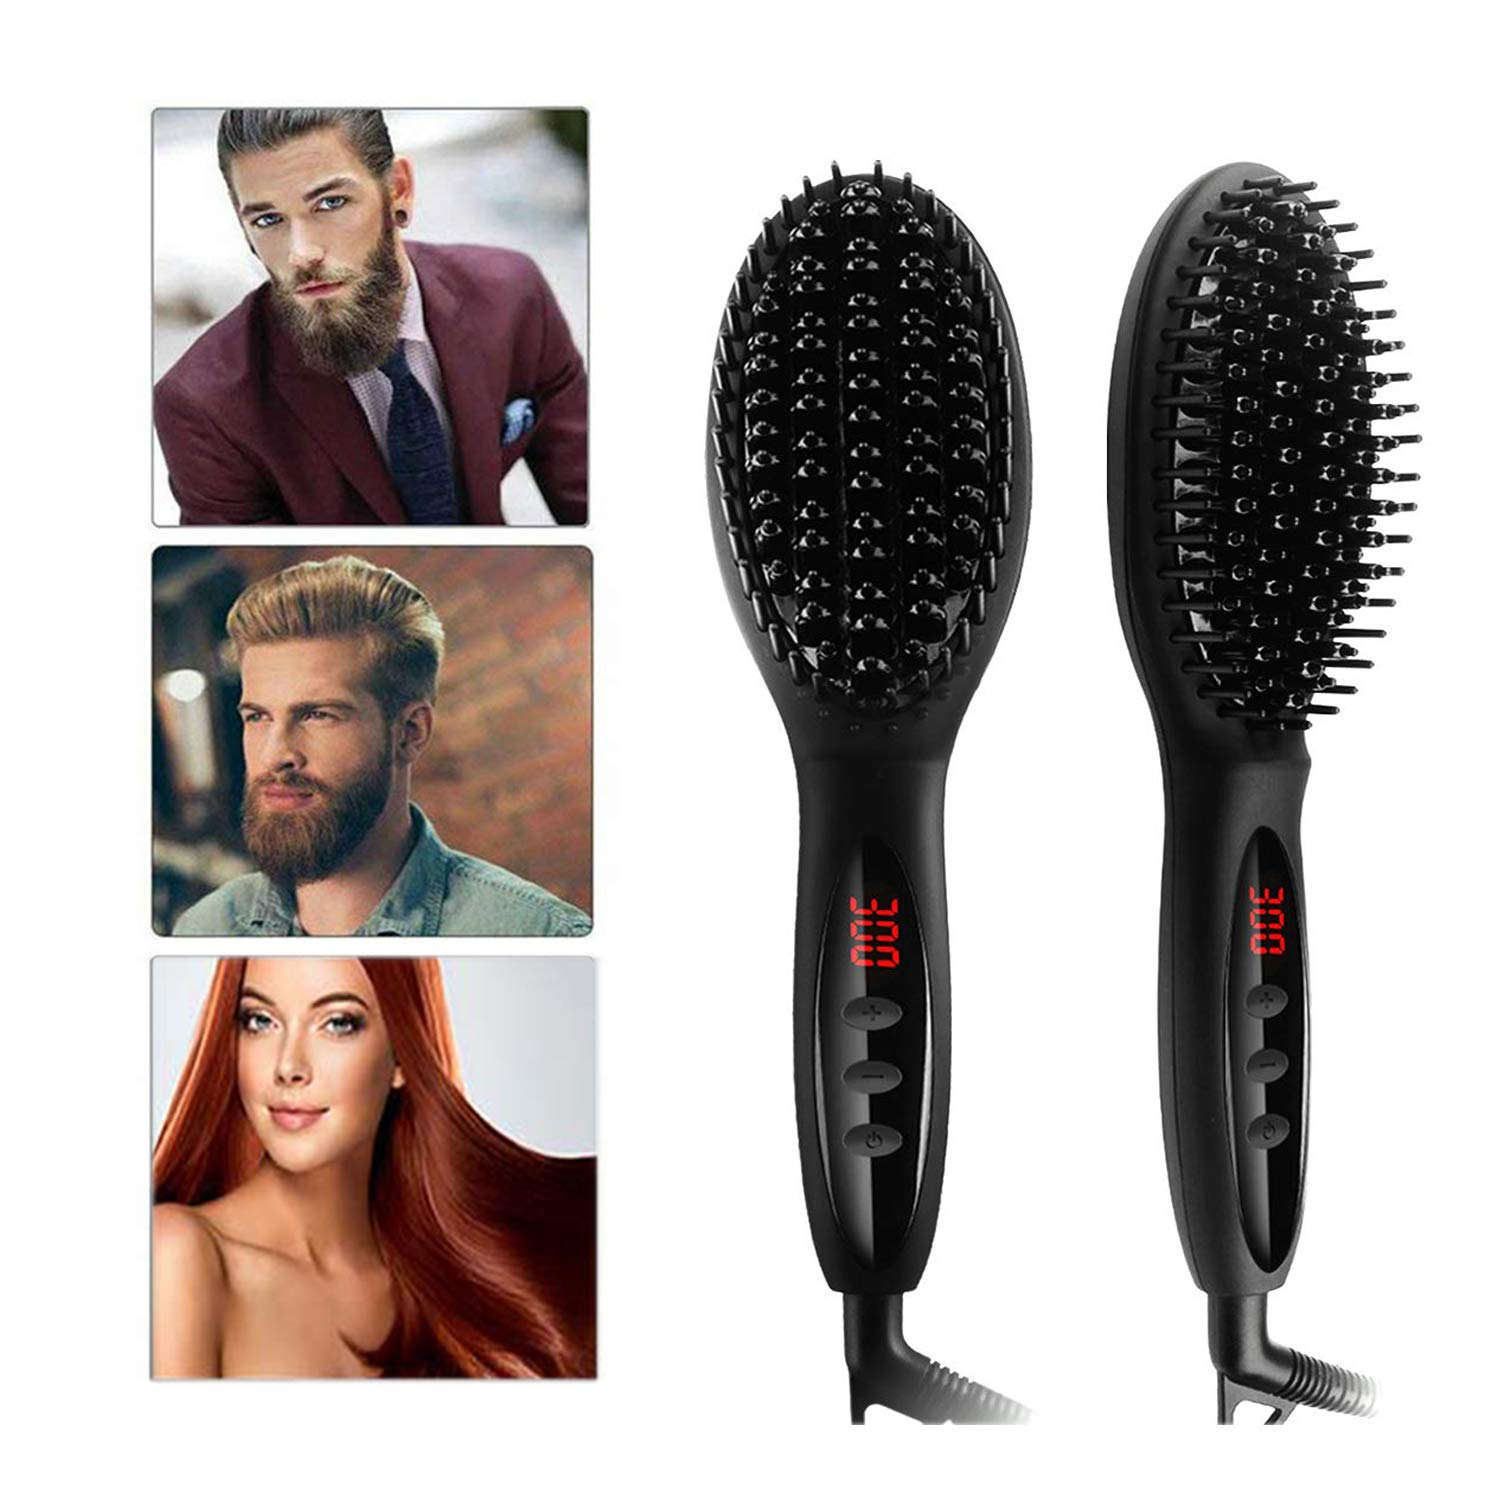 Beard Straightening Brush, Hair Straightener Brush with Anti-Scald Feature Faster Heating Hot Brush Ceramic Iron Hair Brush, Auto Temperature Lock and Auto-off Function, Portable Size for Travel